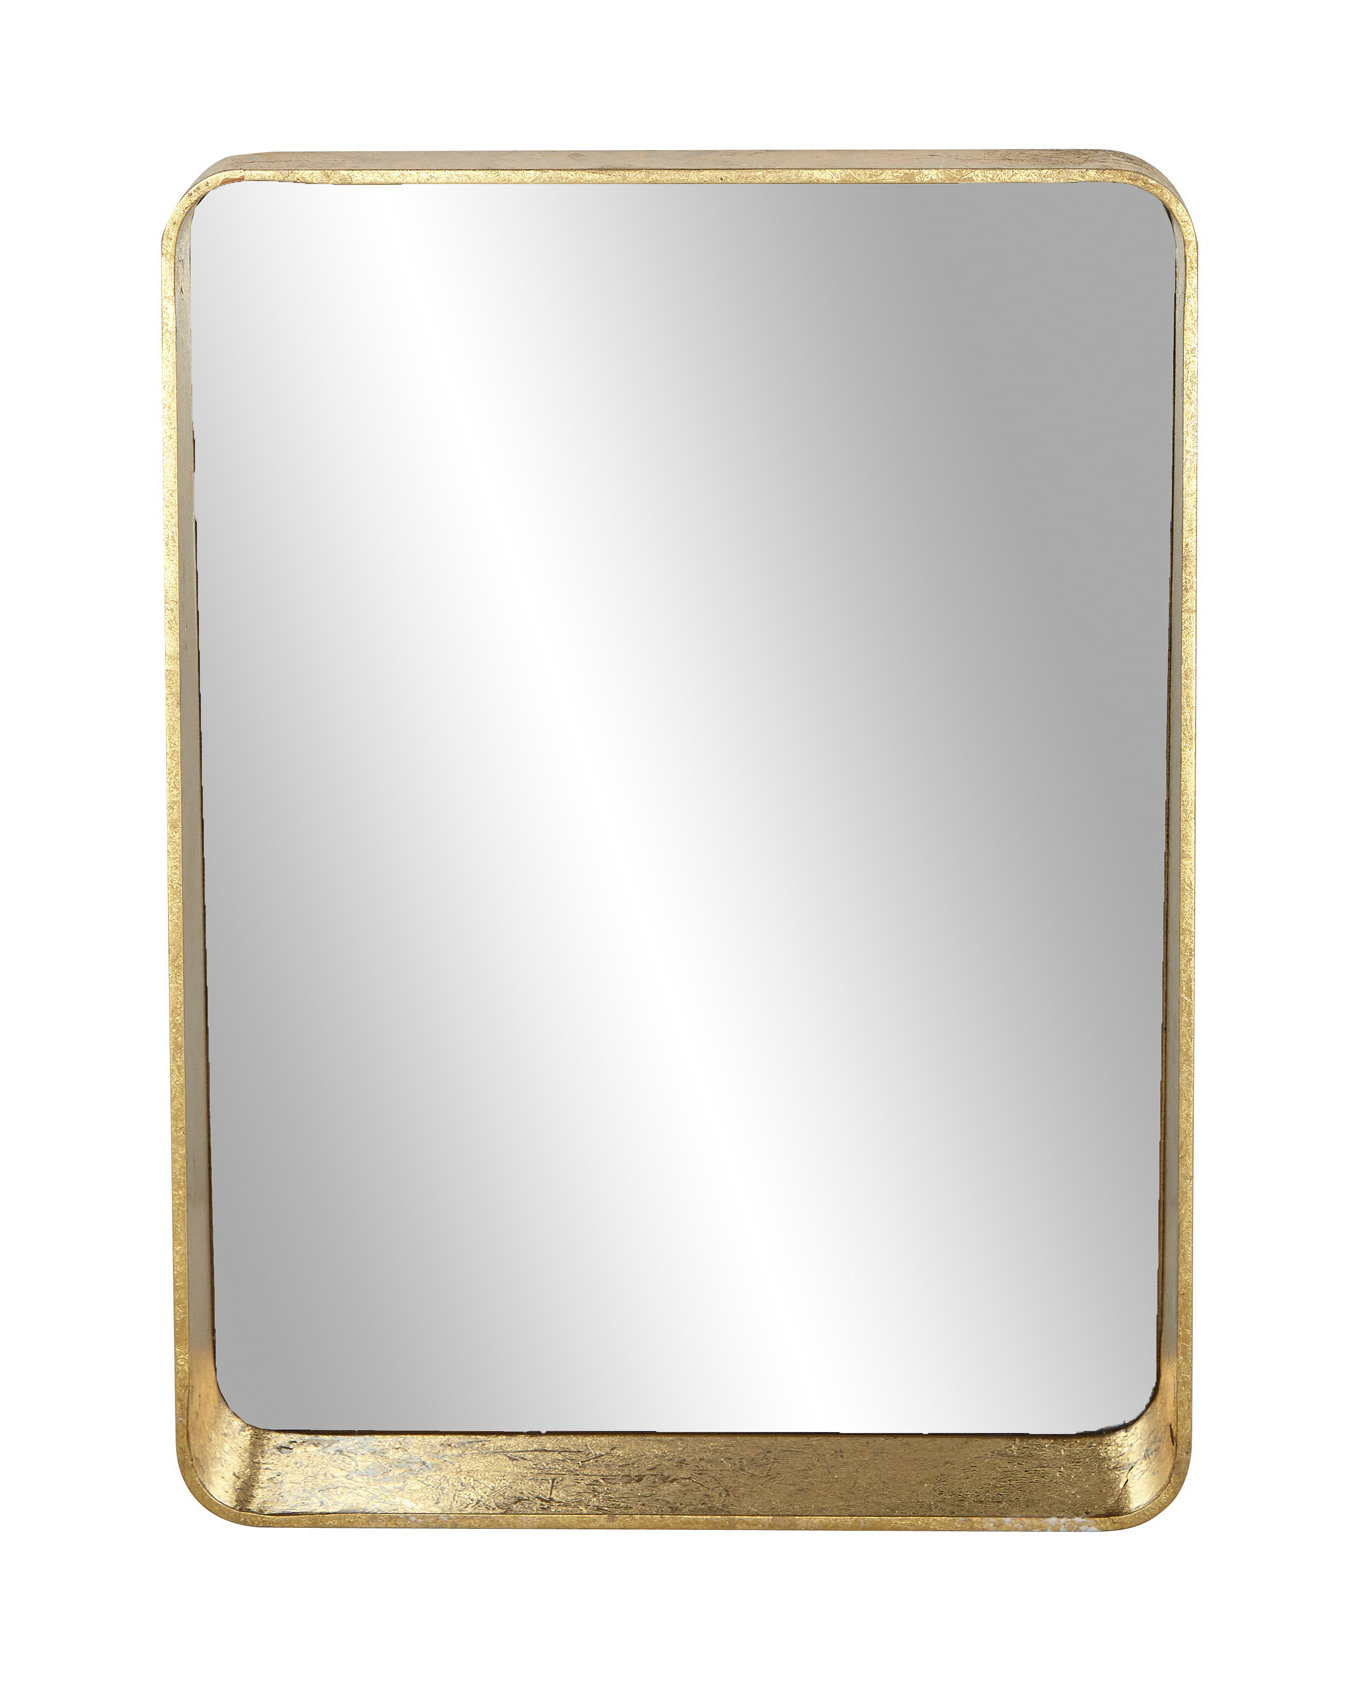 Ginyard Modern And Contemporary Accent Mirror Inside Most Popular Lugo Rectangle Accent Mirrors (View 4 of 20)